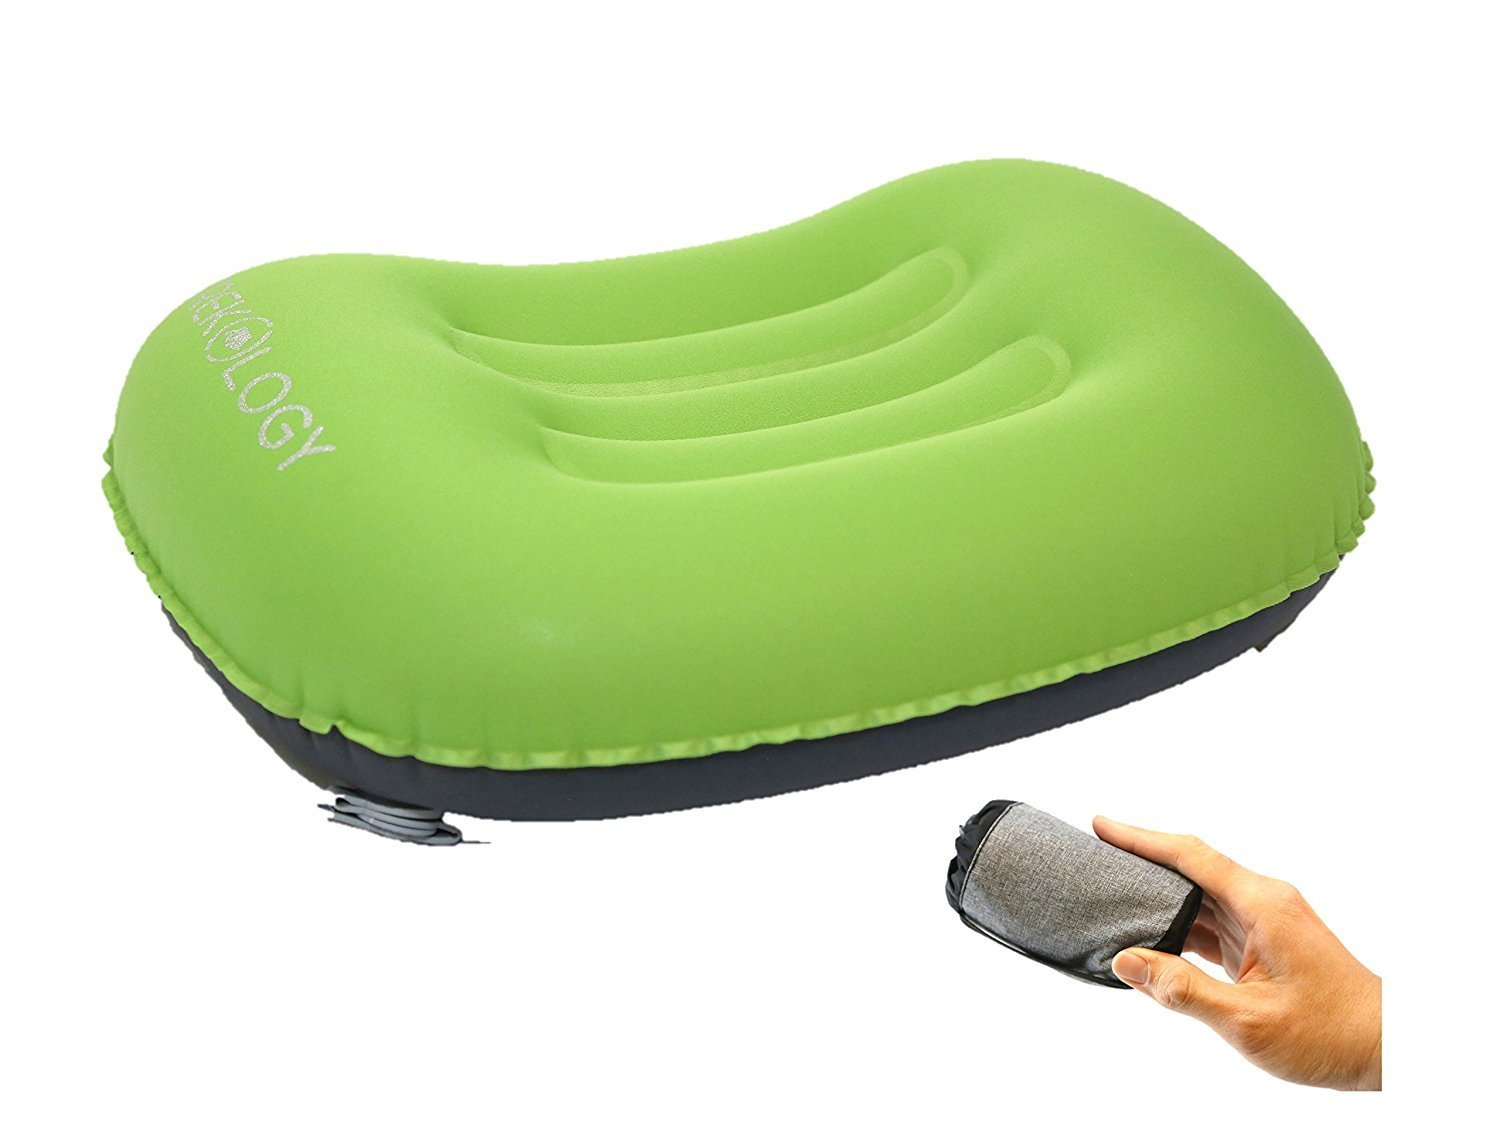 Trekology Ultralight Inflating Travel and Camping Pillows